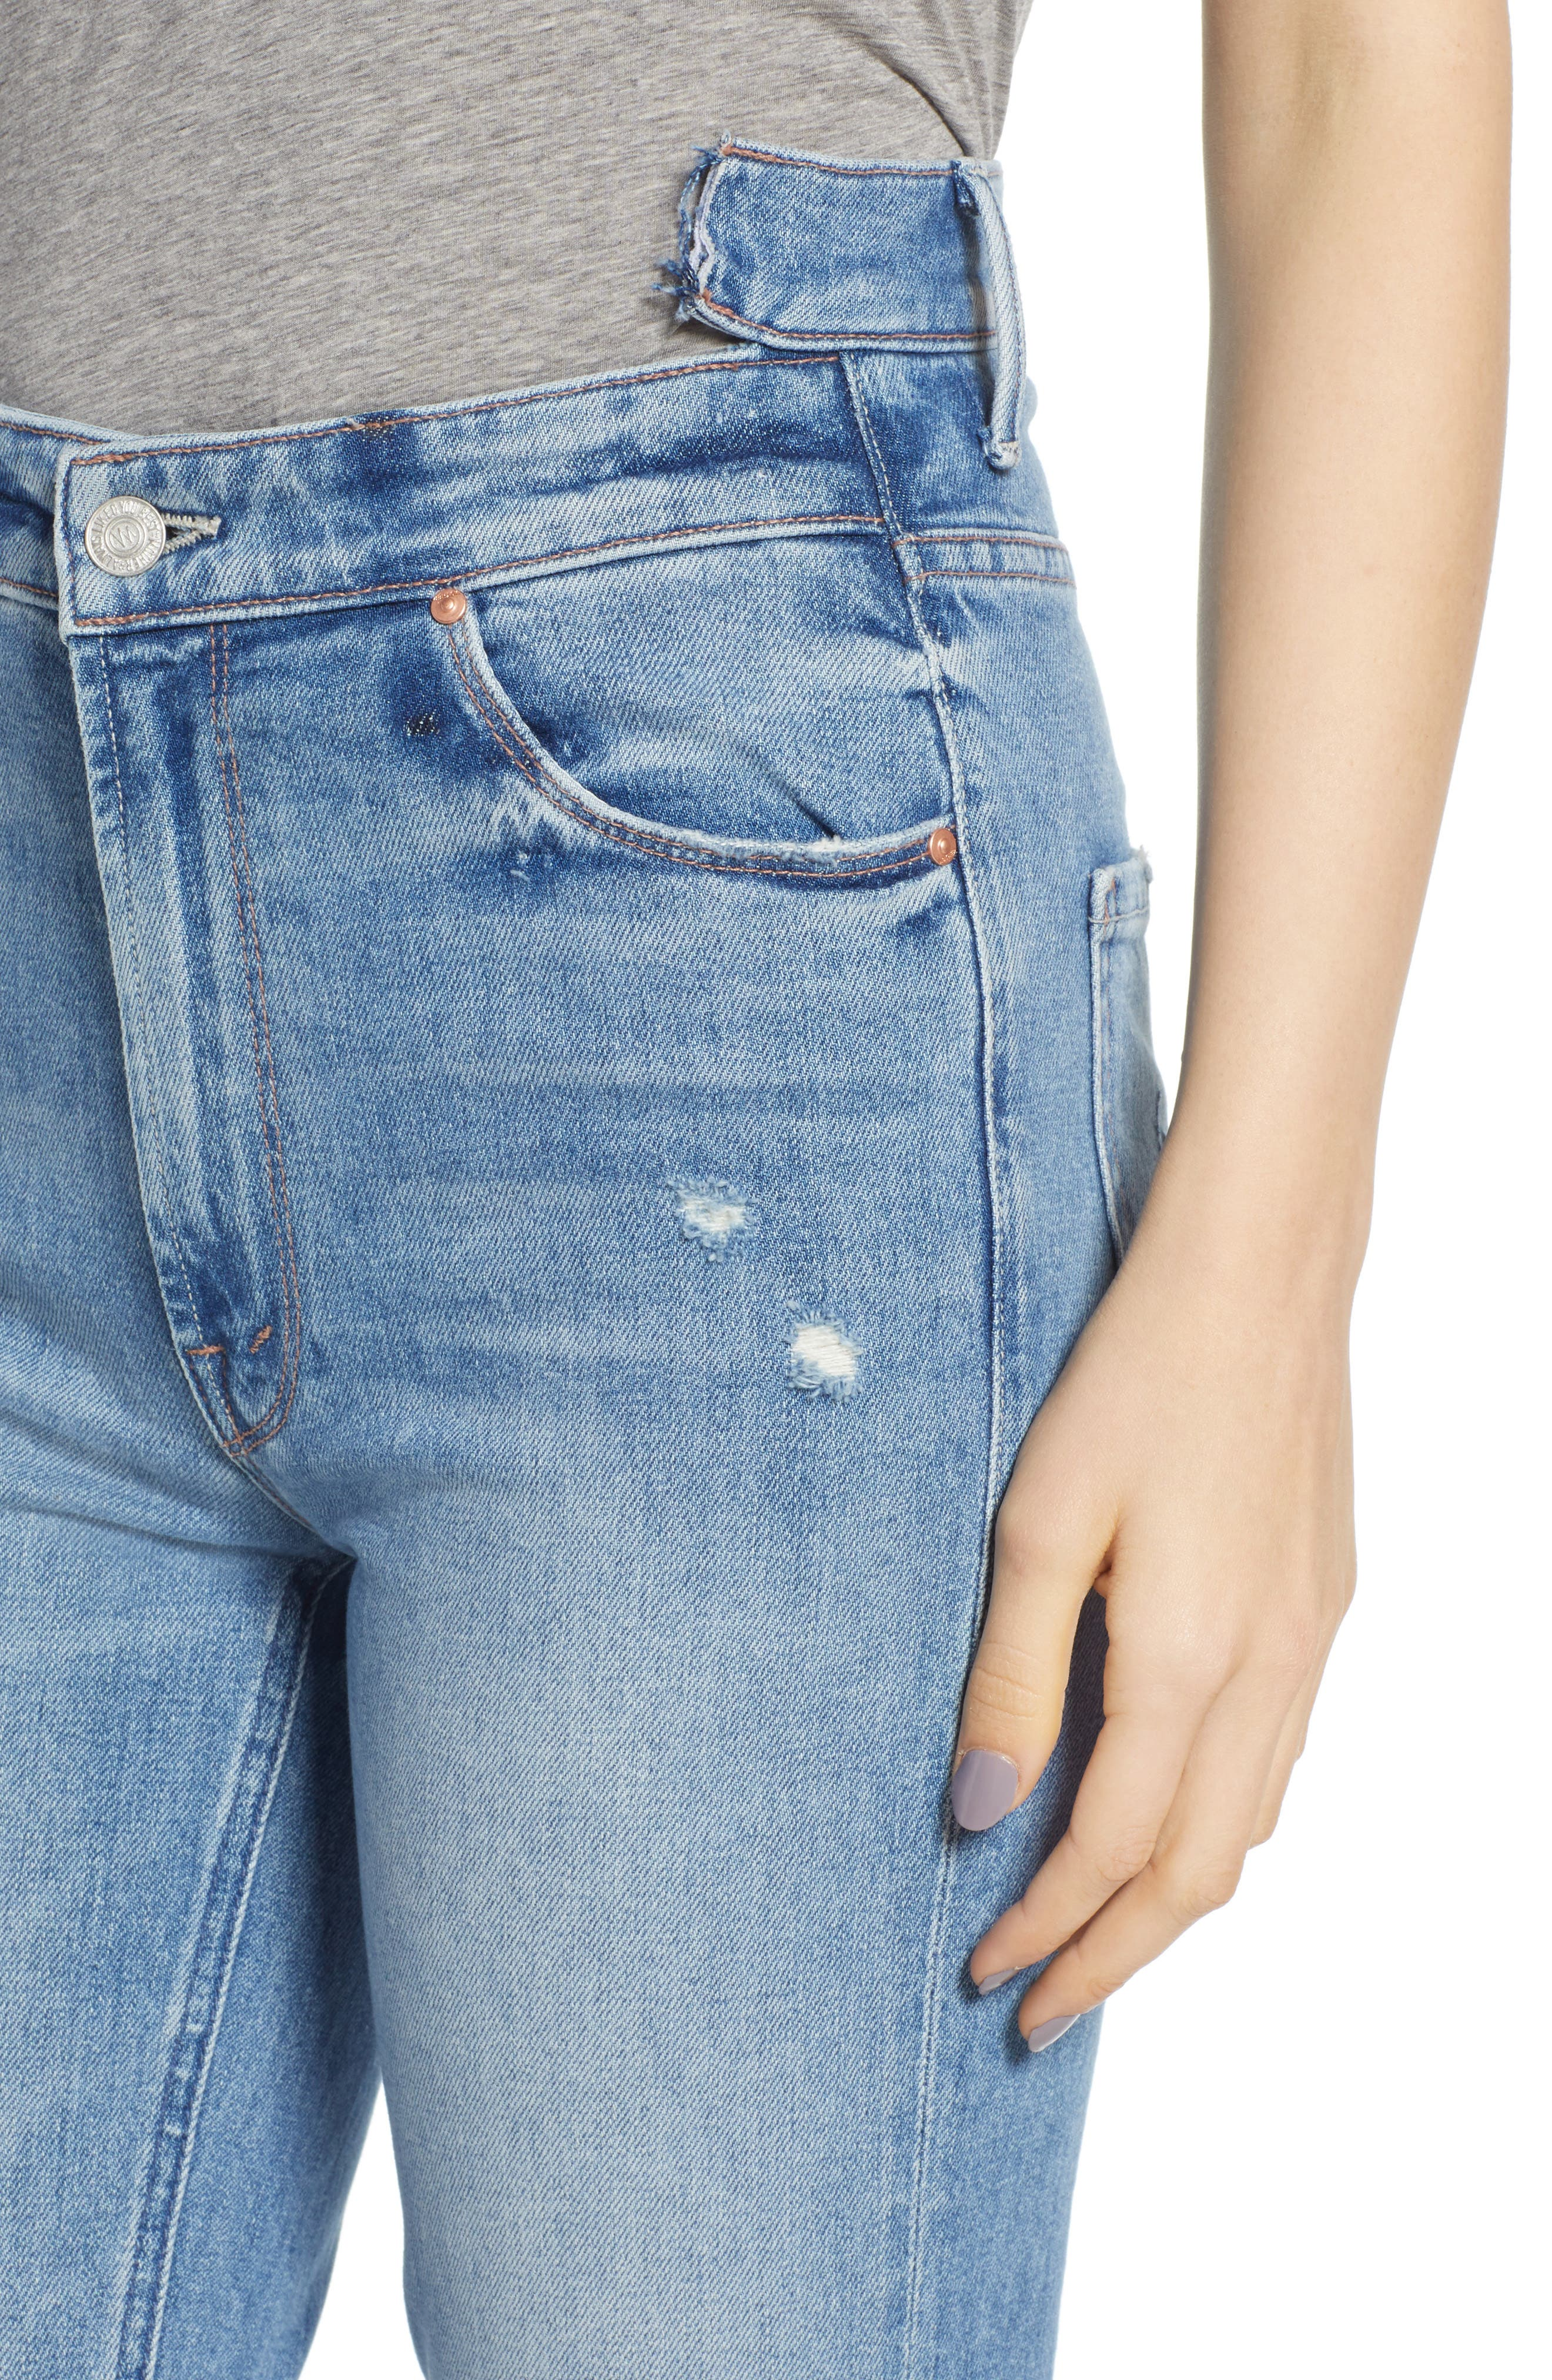 Dazzler Shift Step Waistband Jeans,                             Alternate thumbnail 4, color,                             452